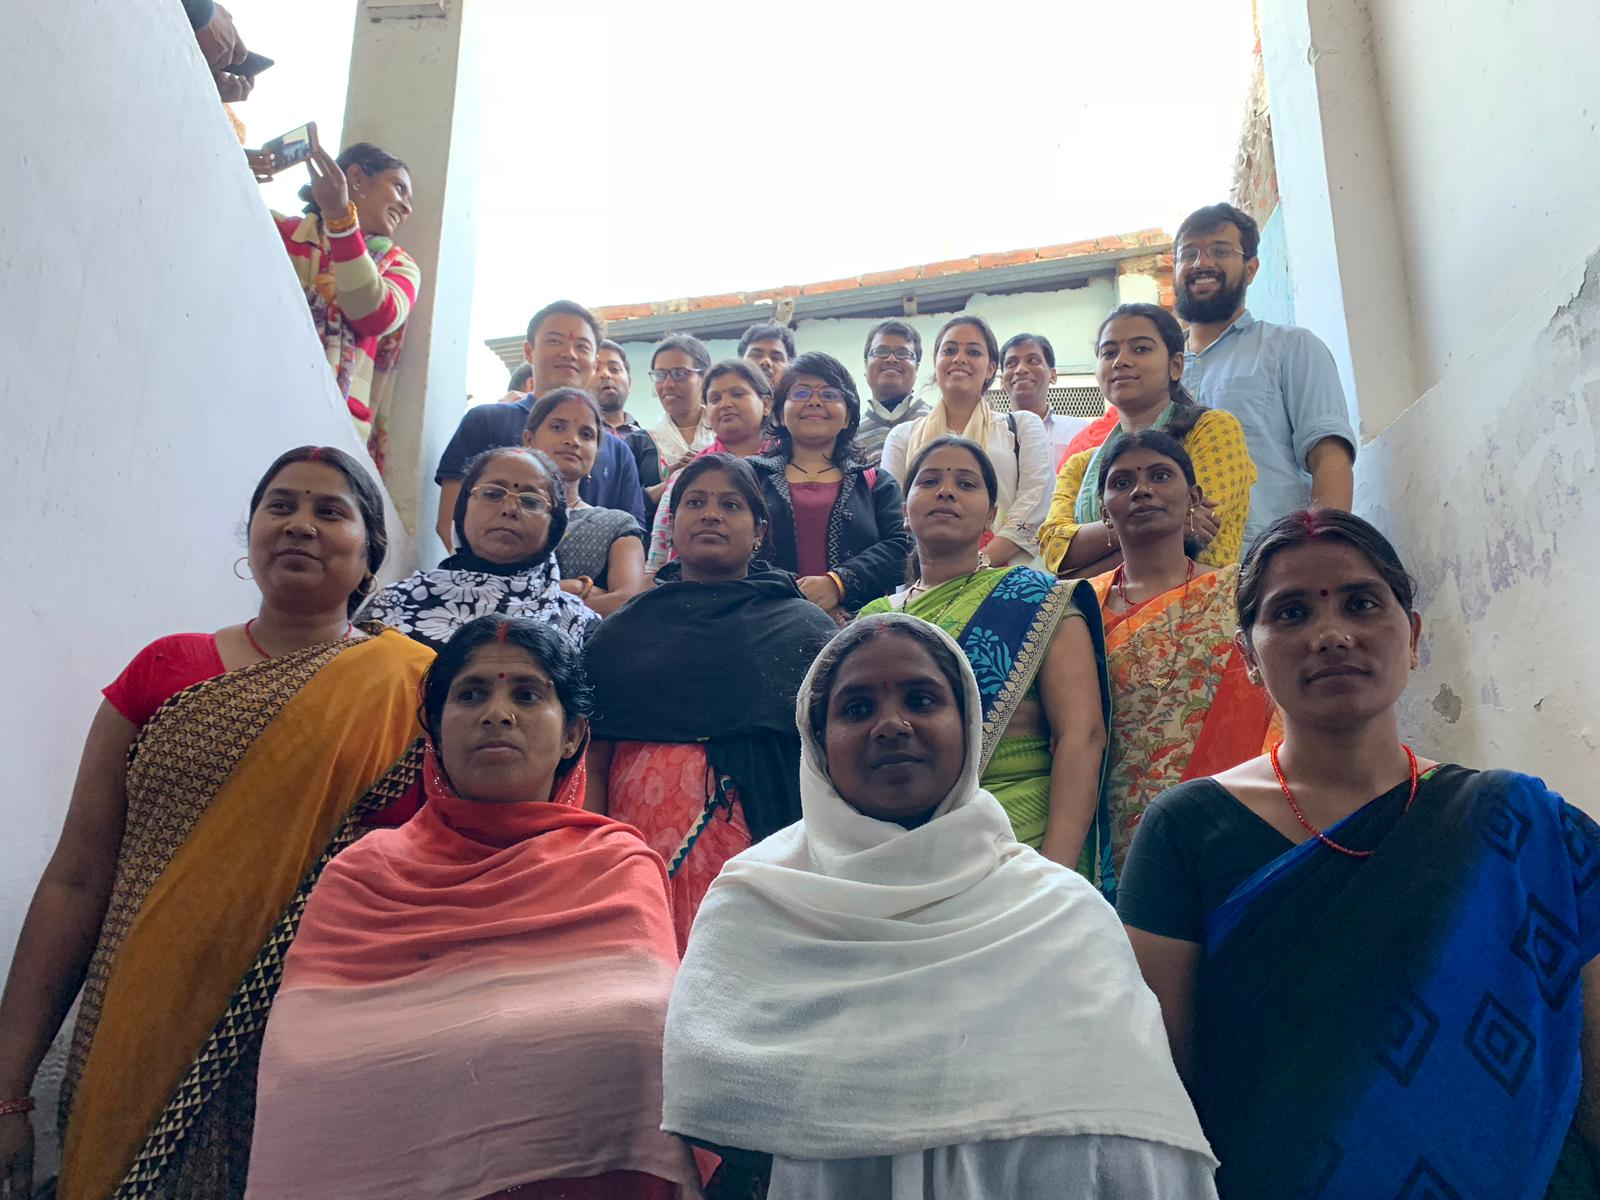 India Development Review: Importance of Multi-stakeholder Engagement in Data Collection